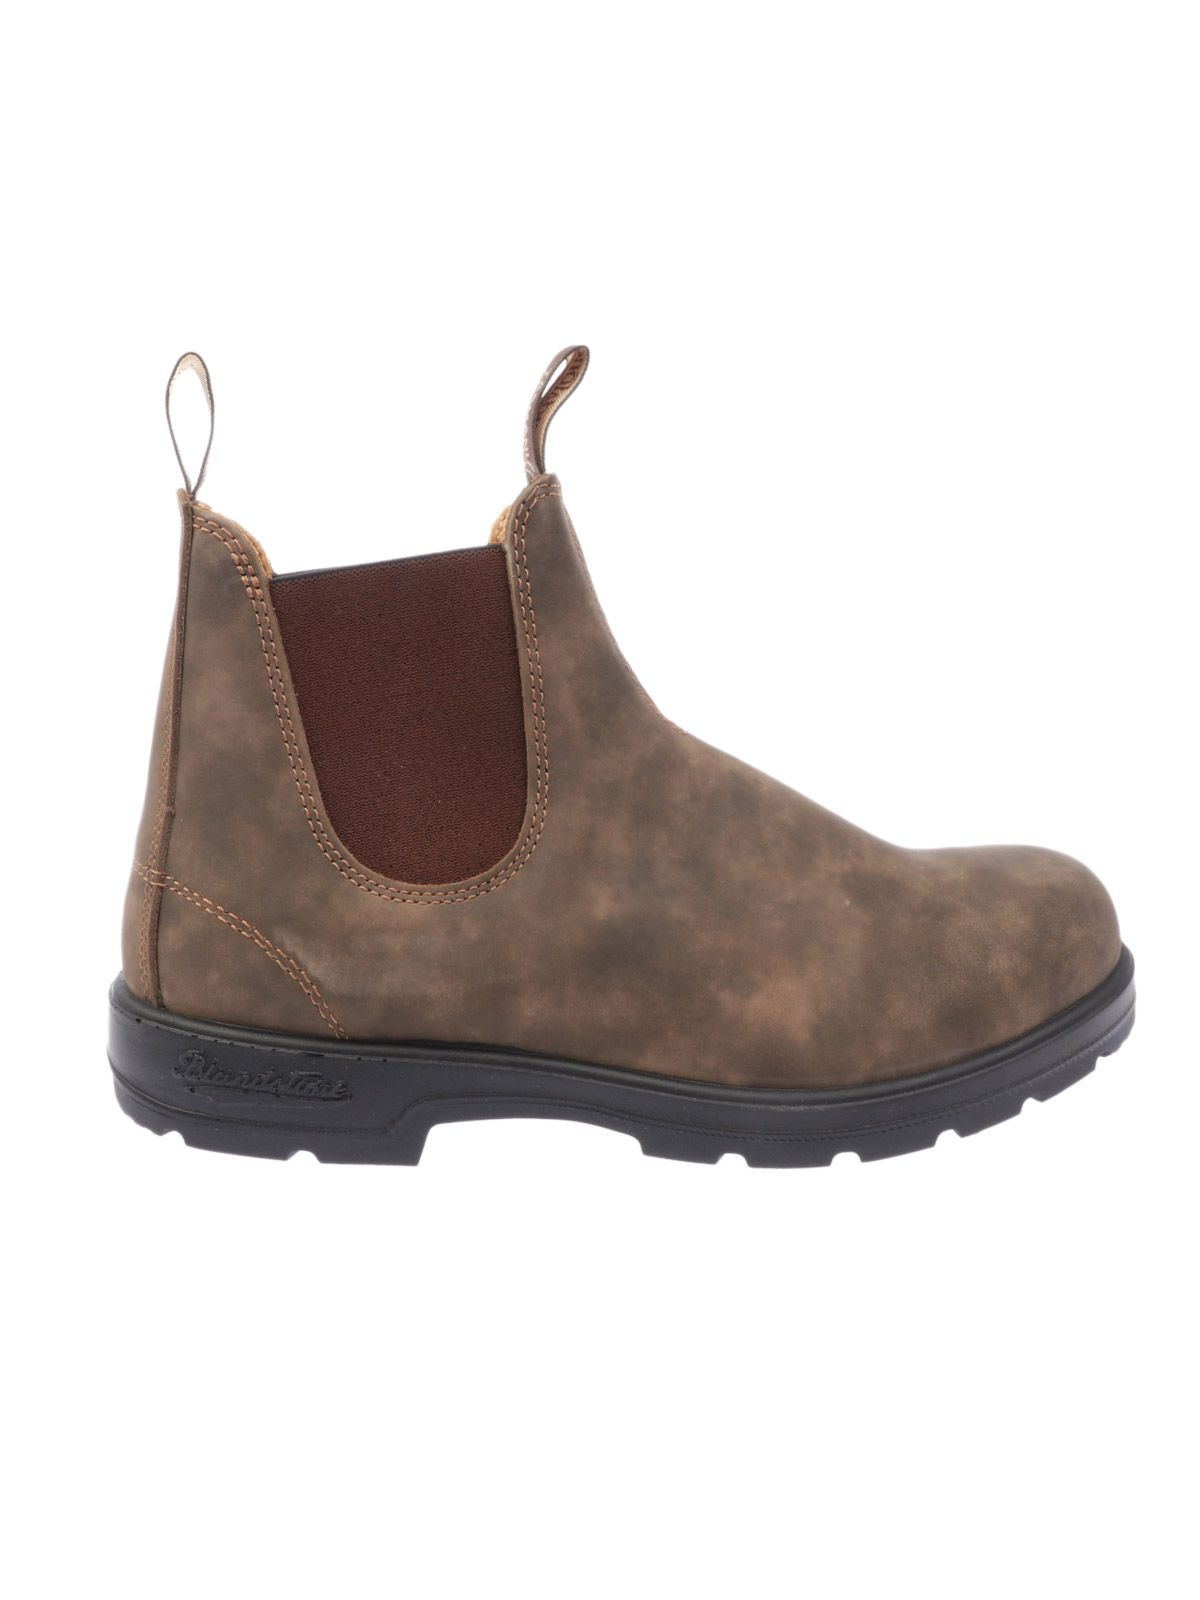 Blundstone BLUNDSTONE MEN'S 202585BCM585 BROWN LEATHER ANKLE BOOTS